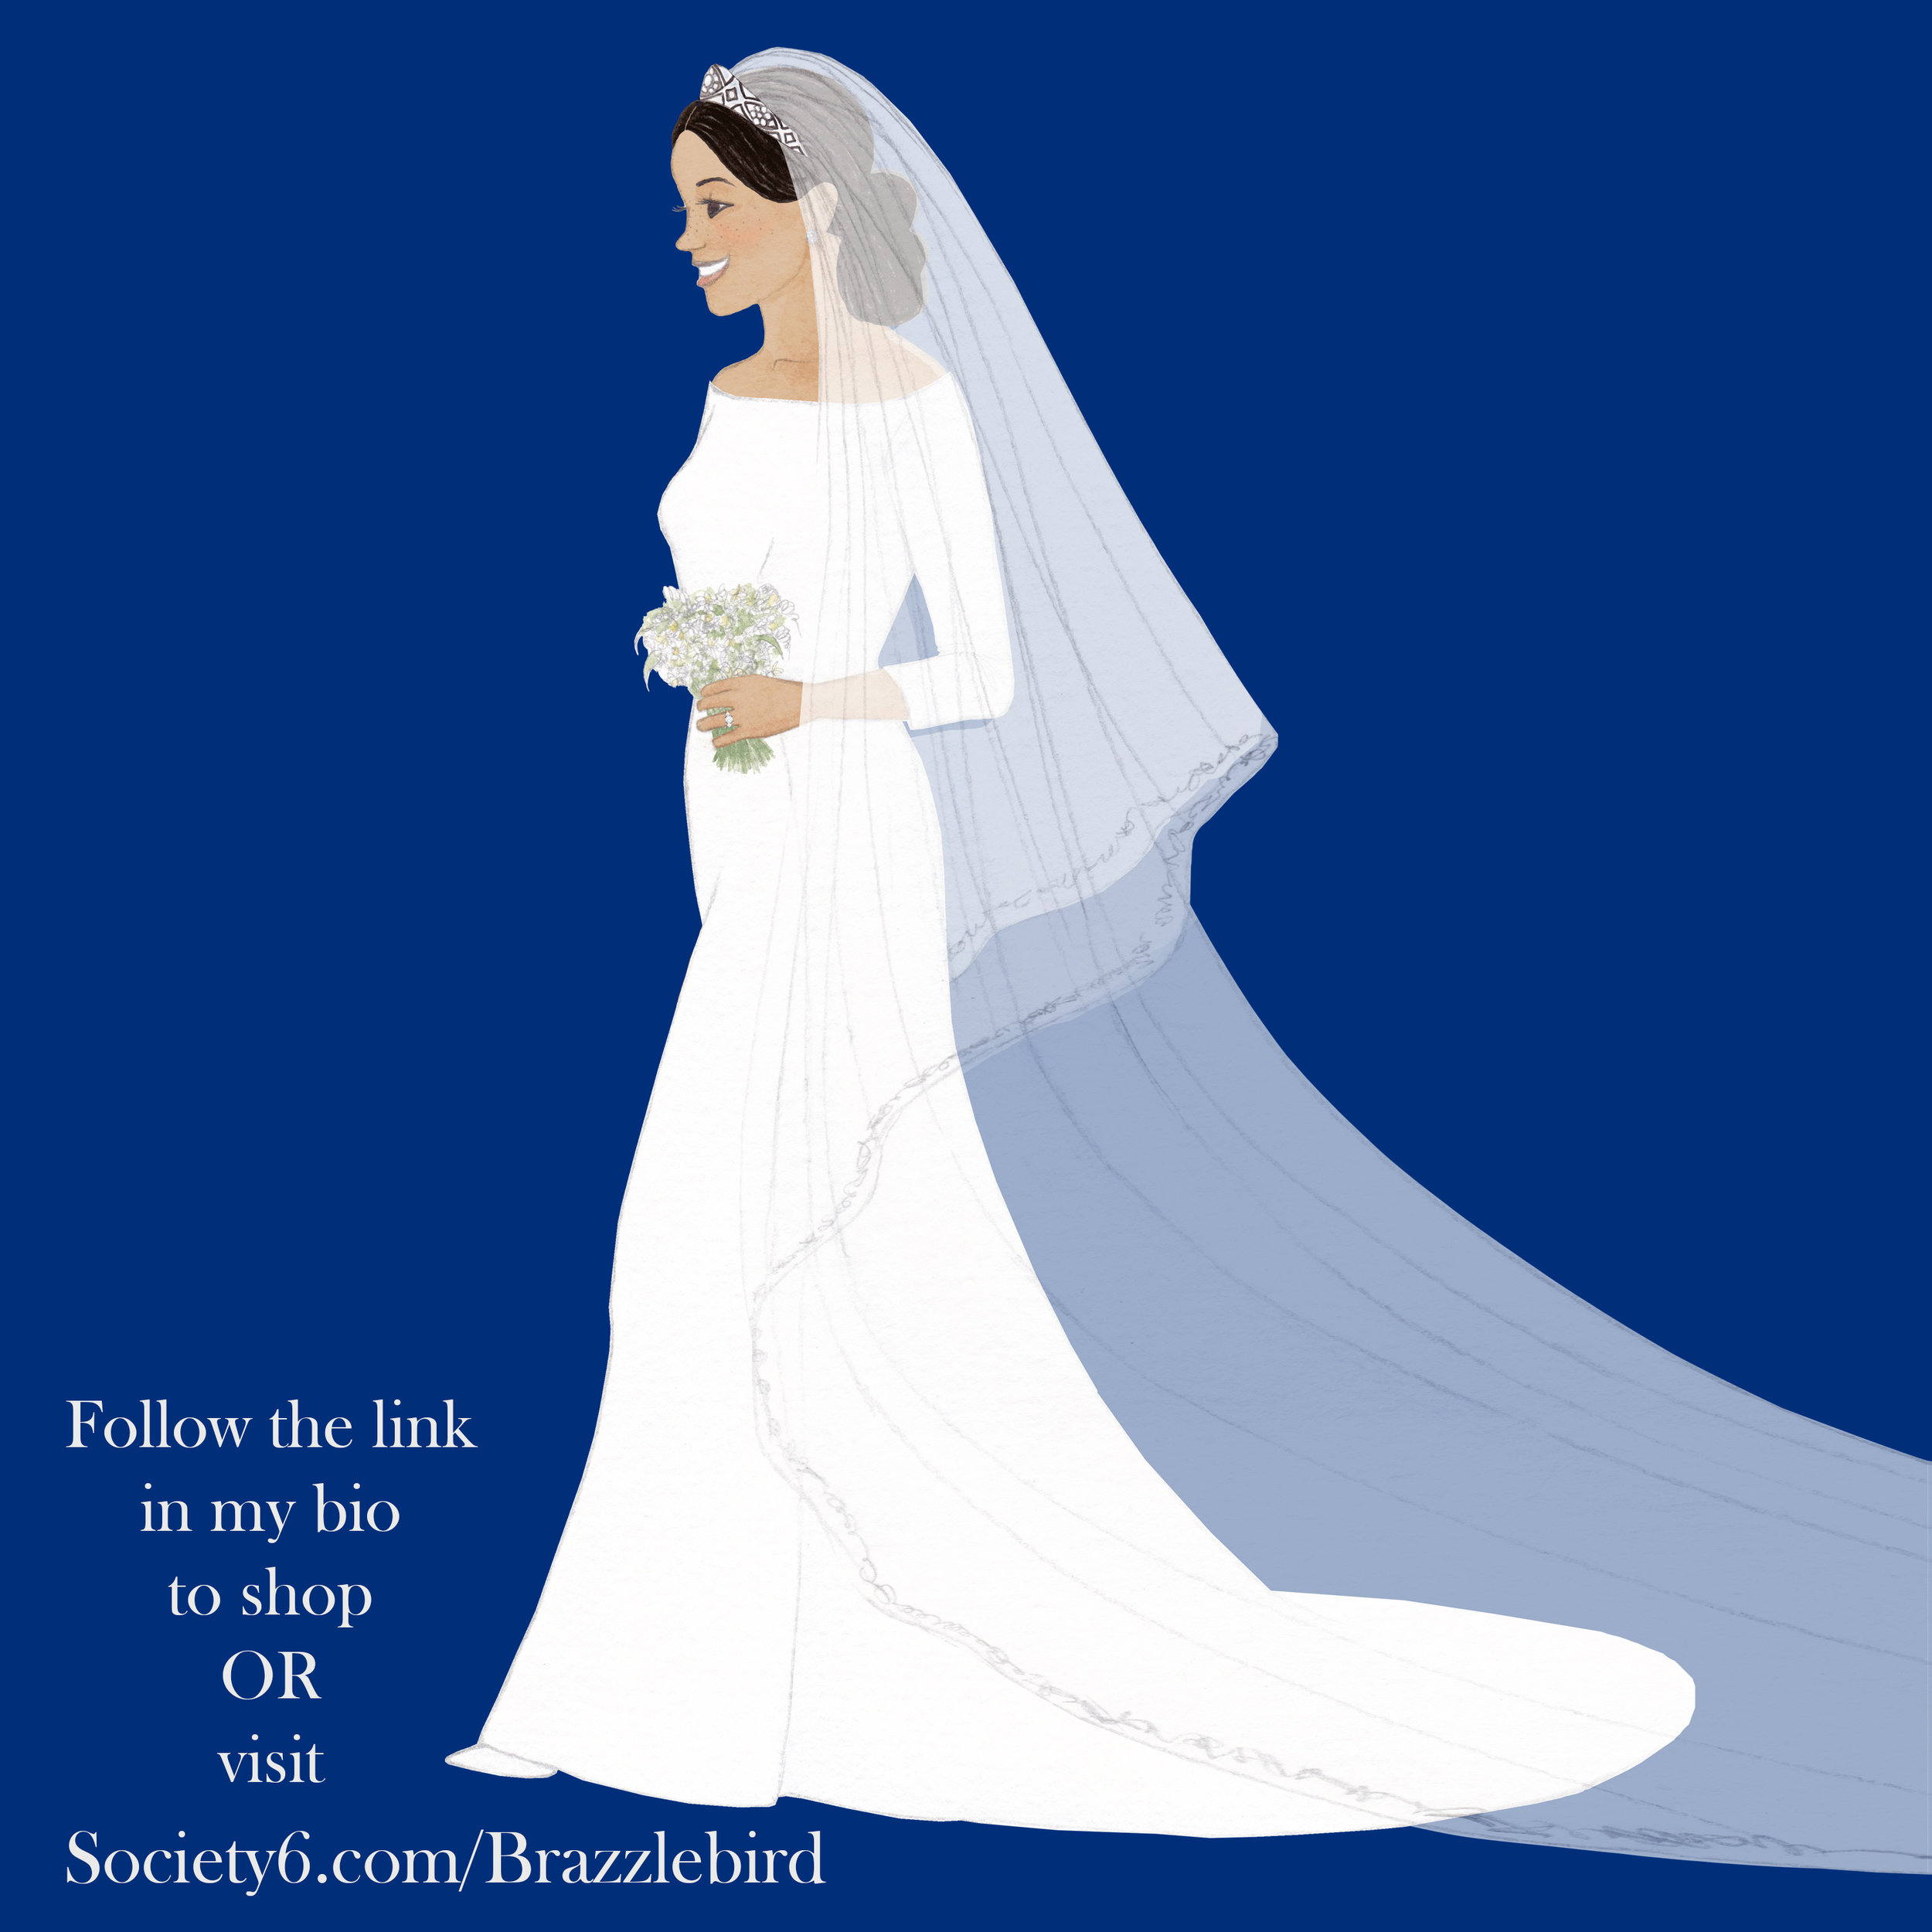 Brazzlebird Meghan Markle Wedding Dress Society6